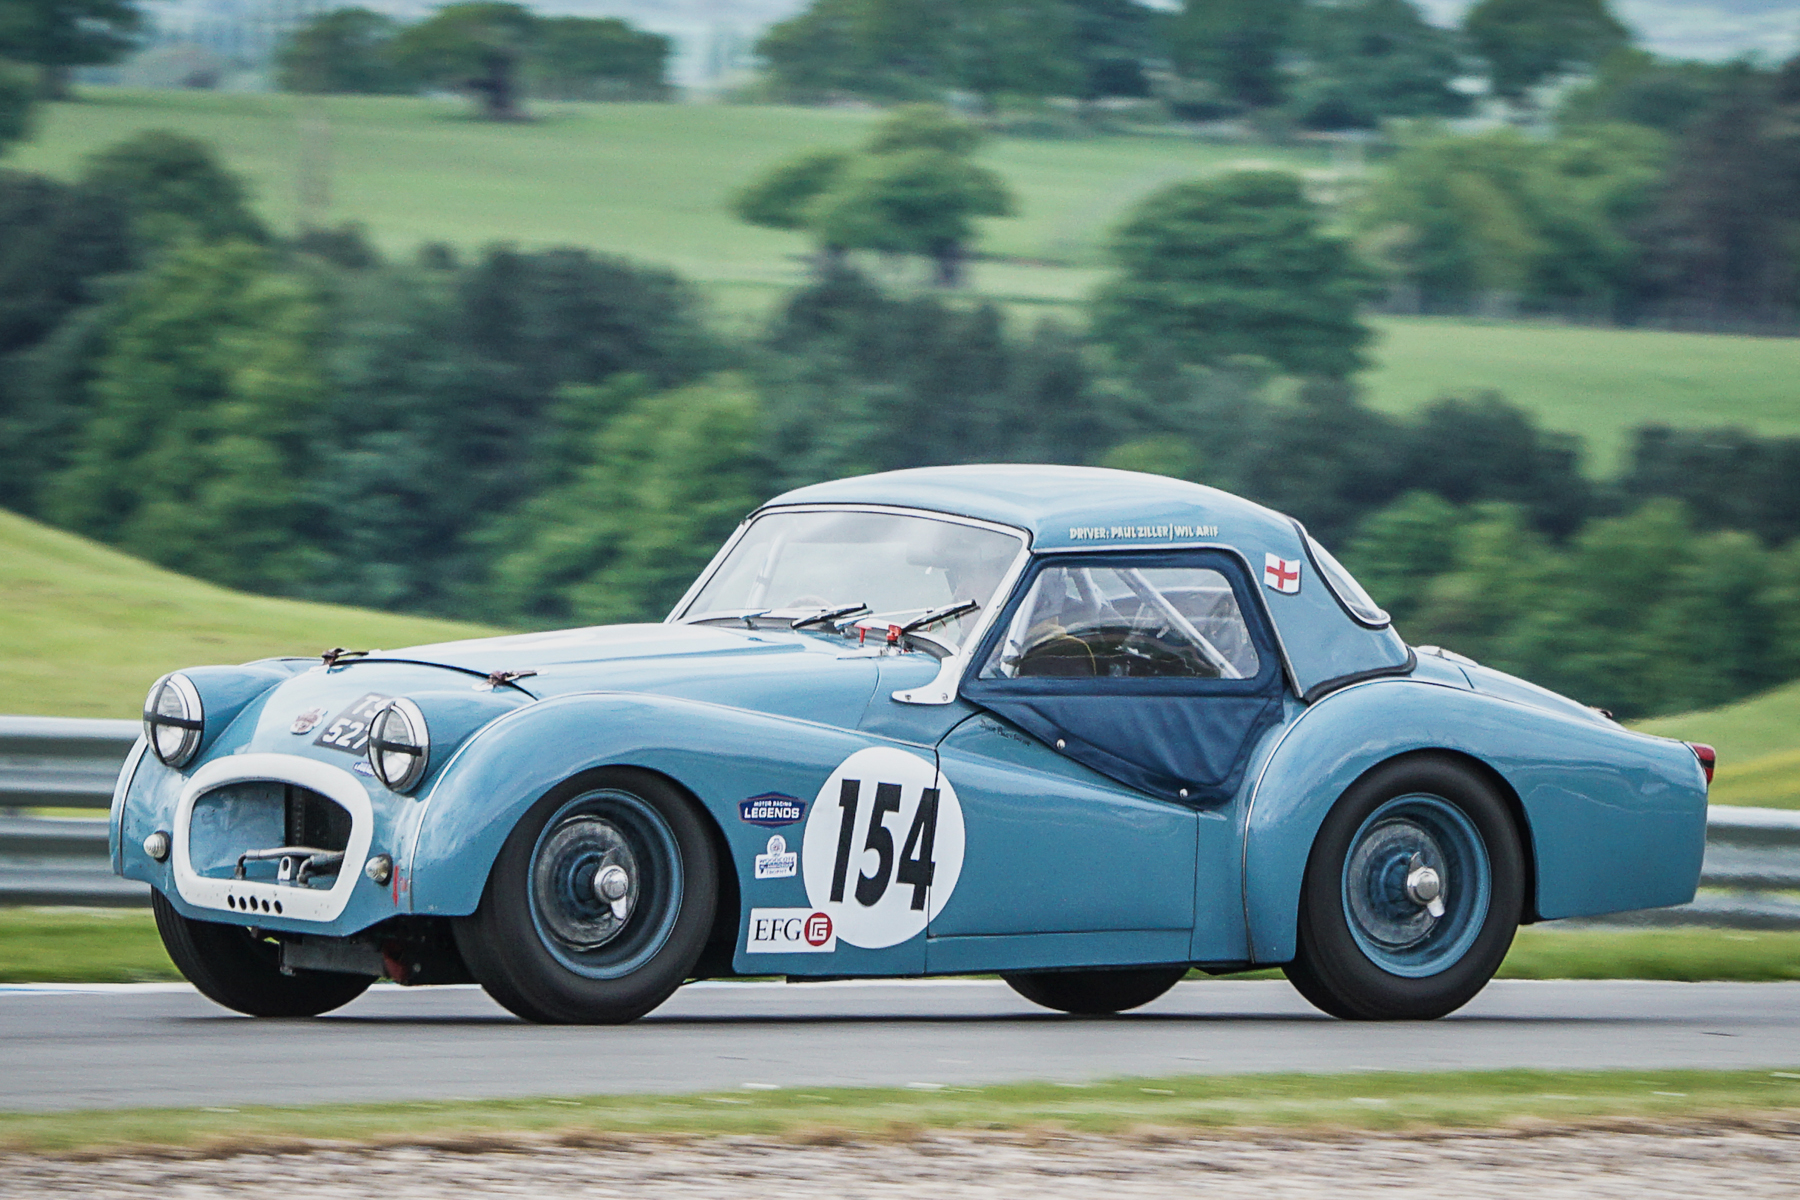 Paul Ziller in his Triumph TR2                                                                                                   Photo - Chris Dicken, Tripos Media